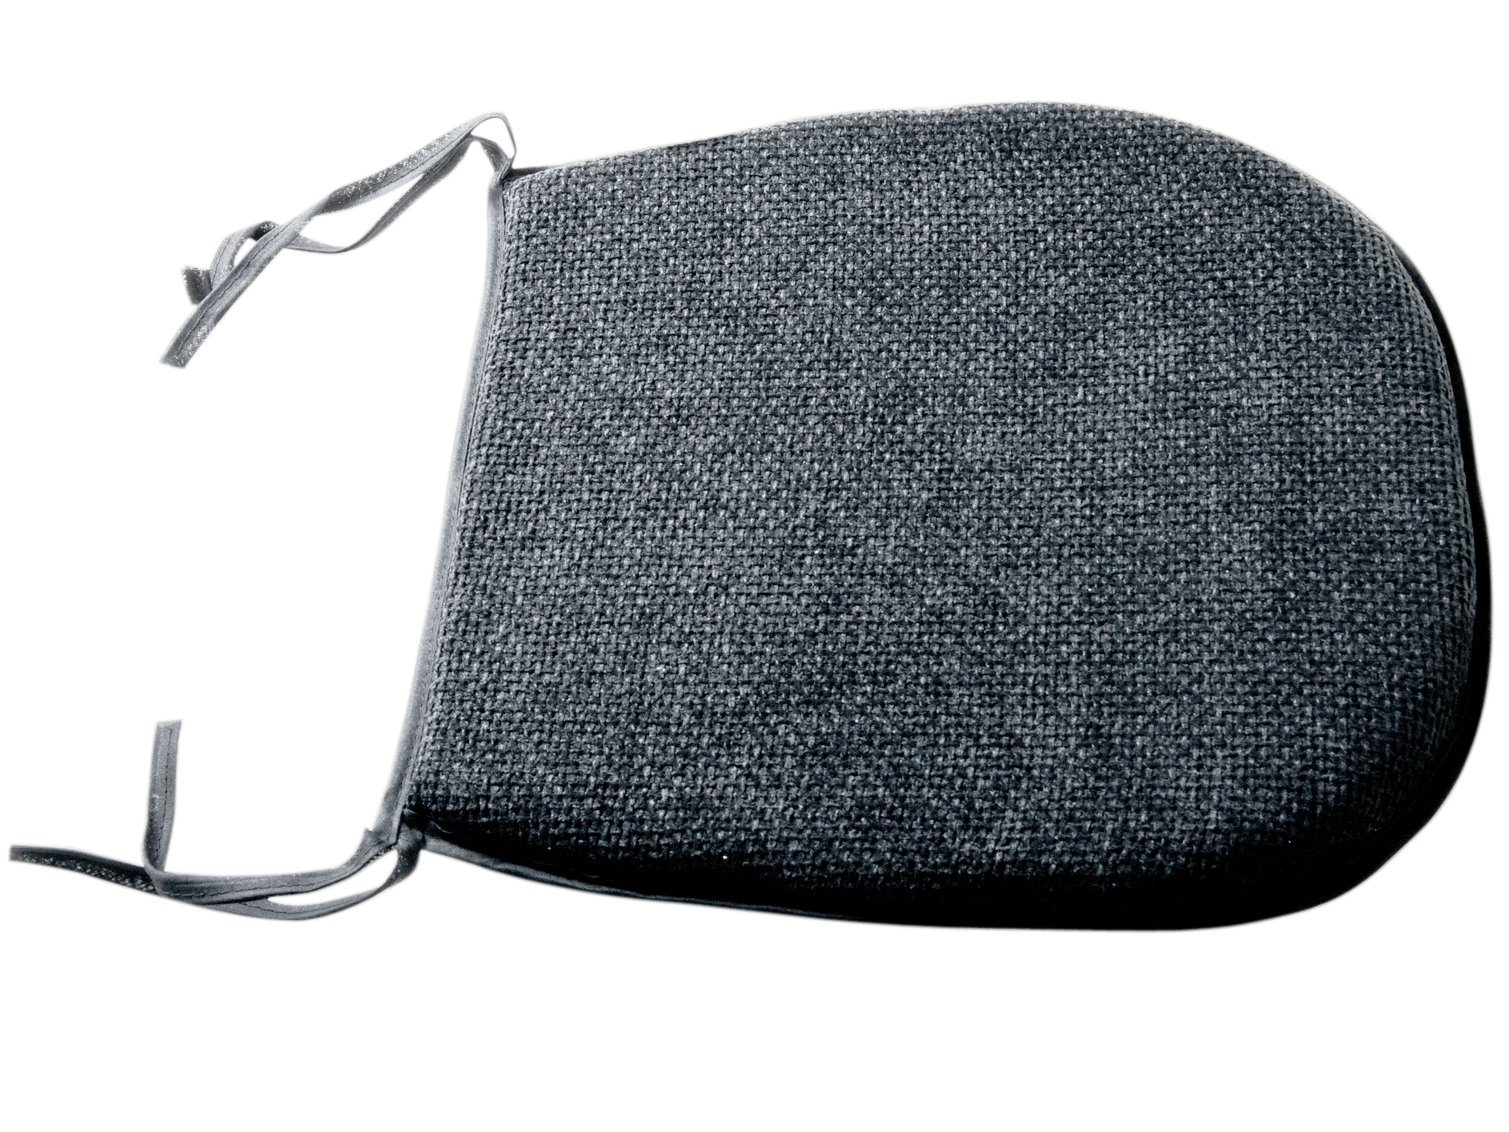 grey weave garden chairs hanging a hammock chair indoors 6 cushion seat pads basket for kitchen or